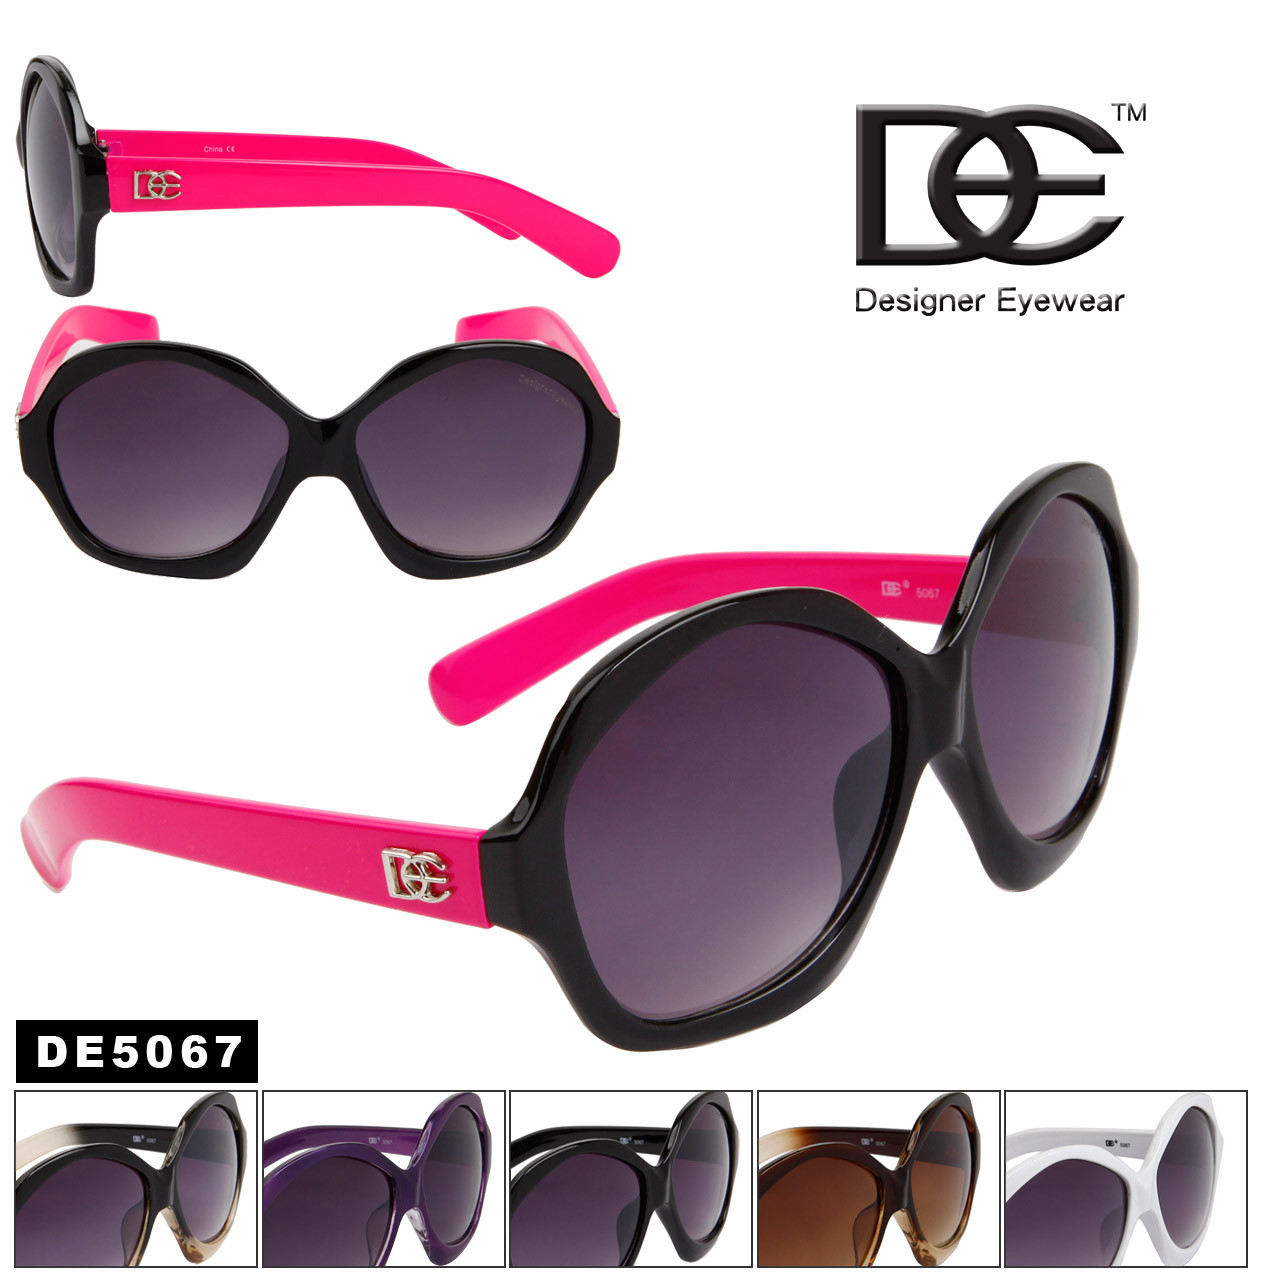 Fashion Sunglasses DE5067